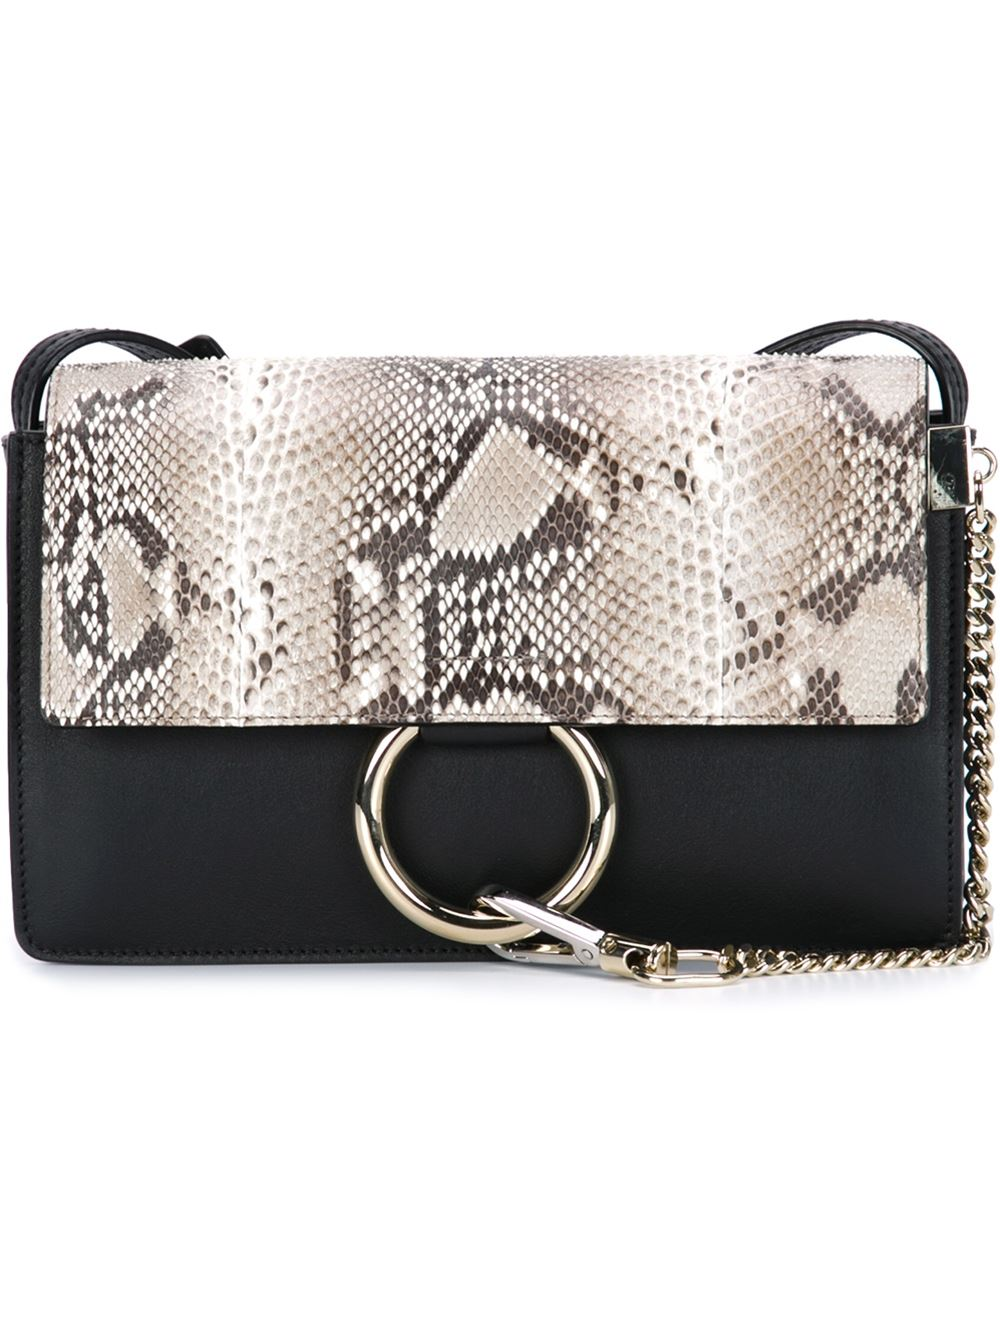 Chloe Faye Shoulder Bag Reference Guide  1cfa1f6201fd6